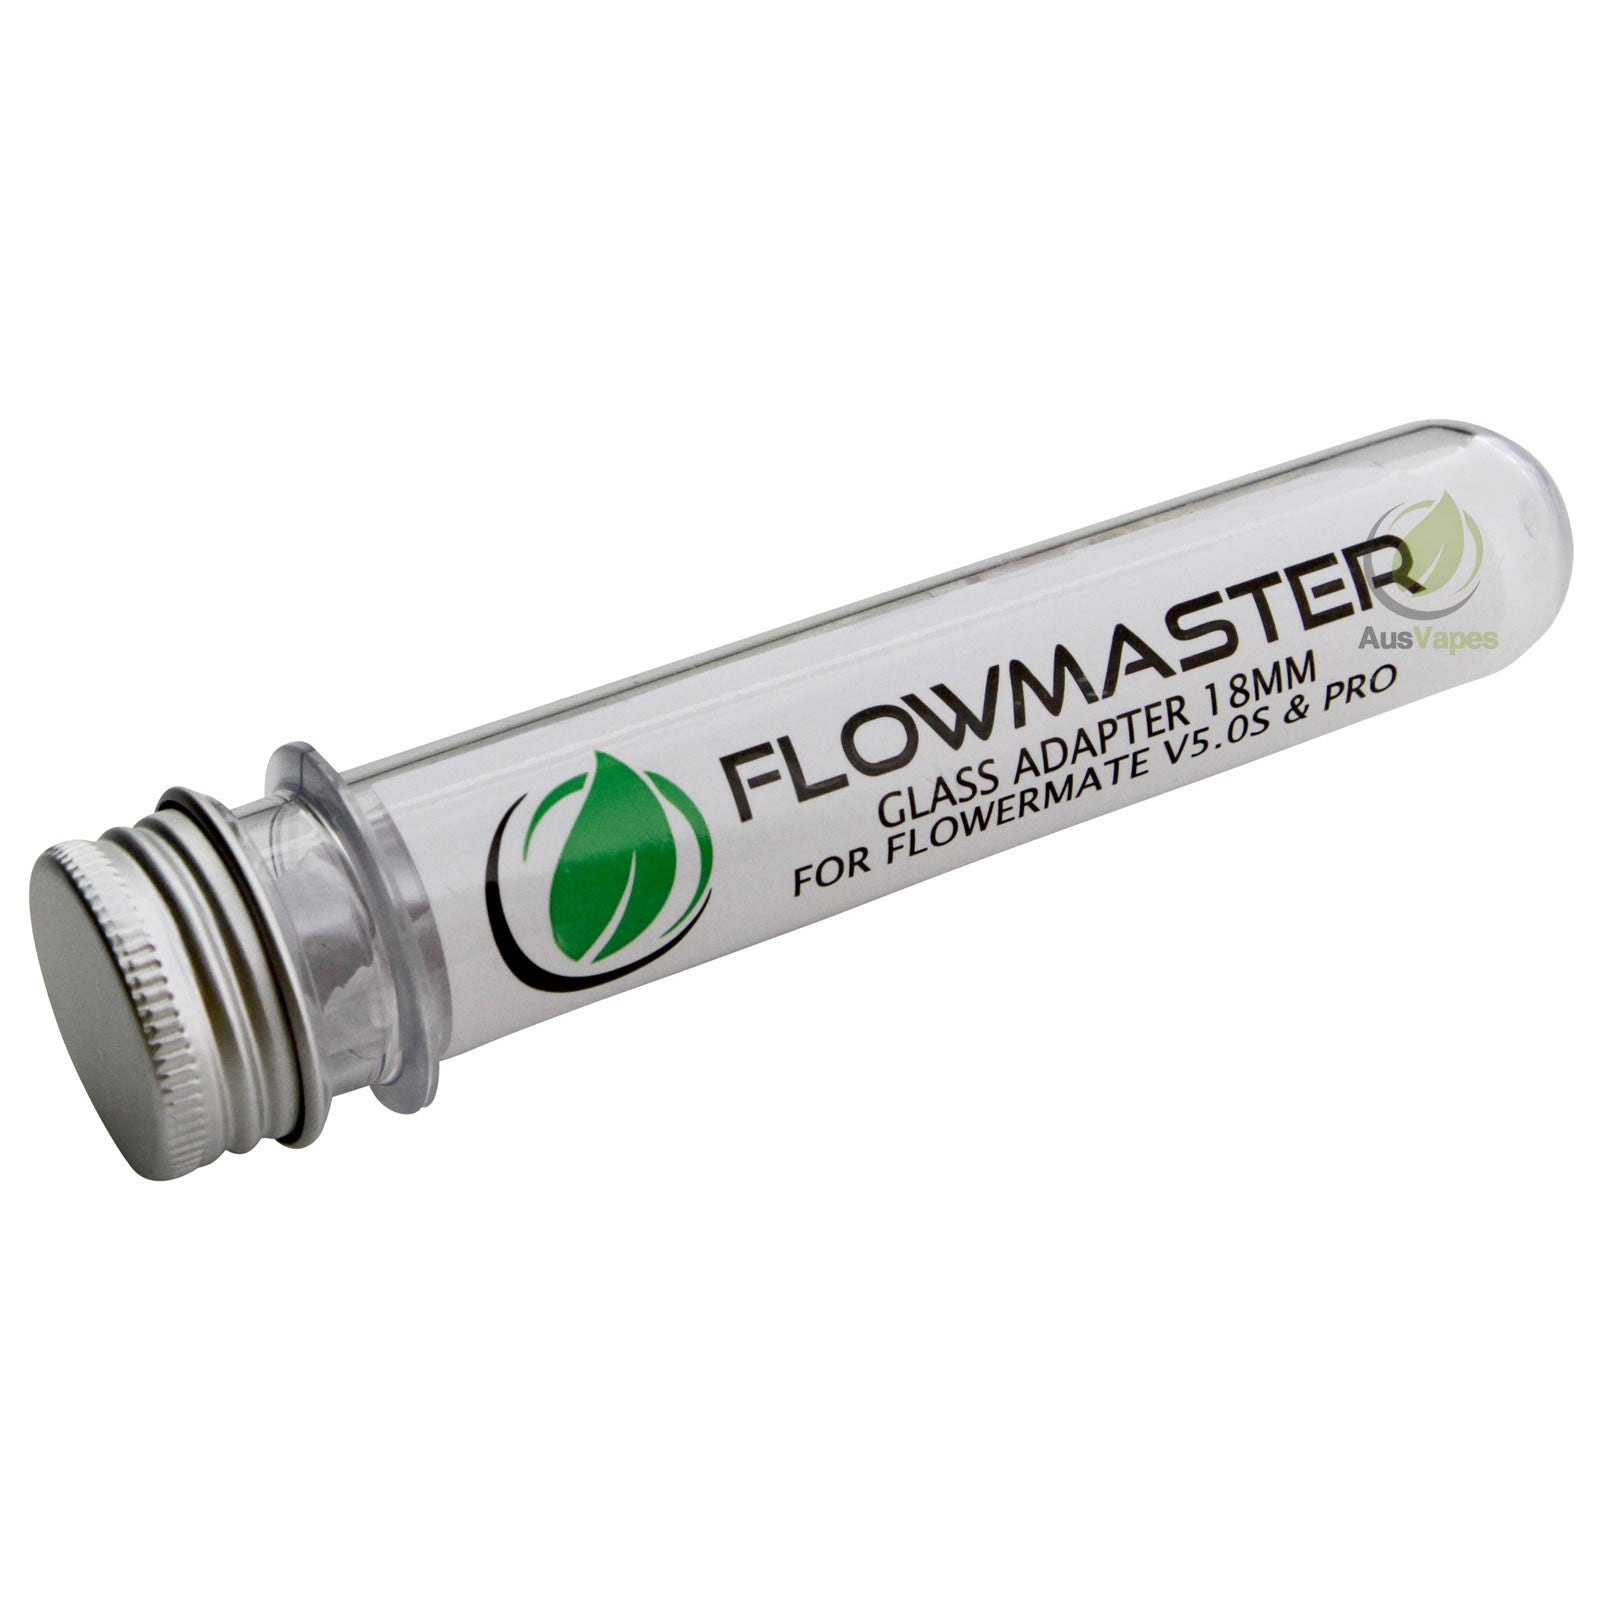 FlowMaster 18mm GonG Adapter for Flowermate V5.0